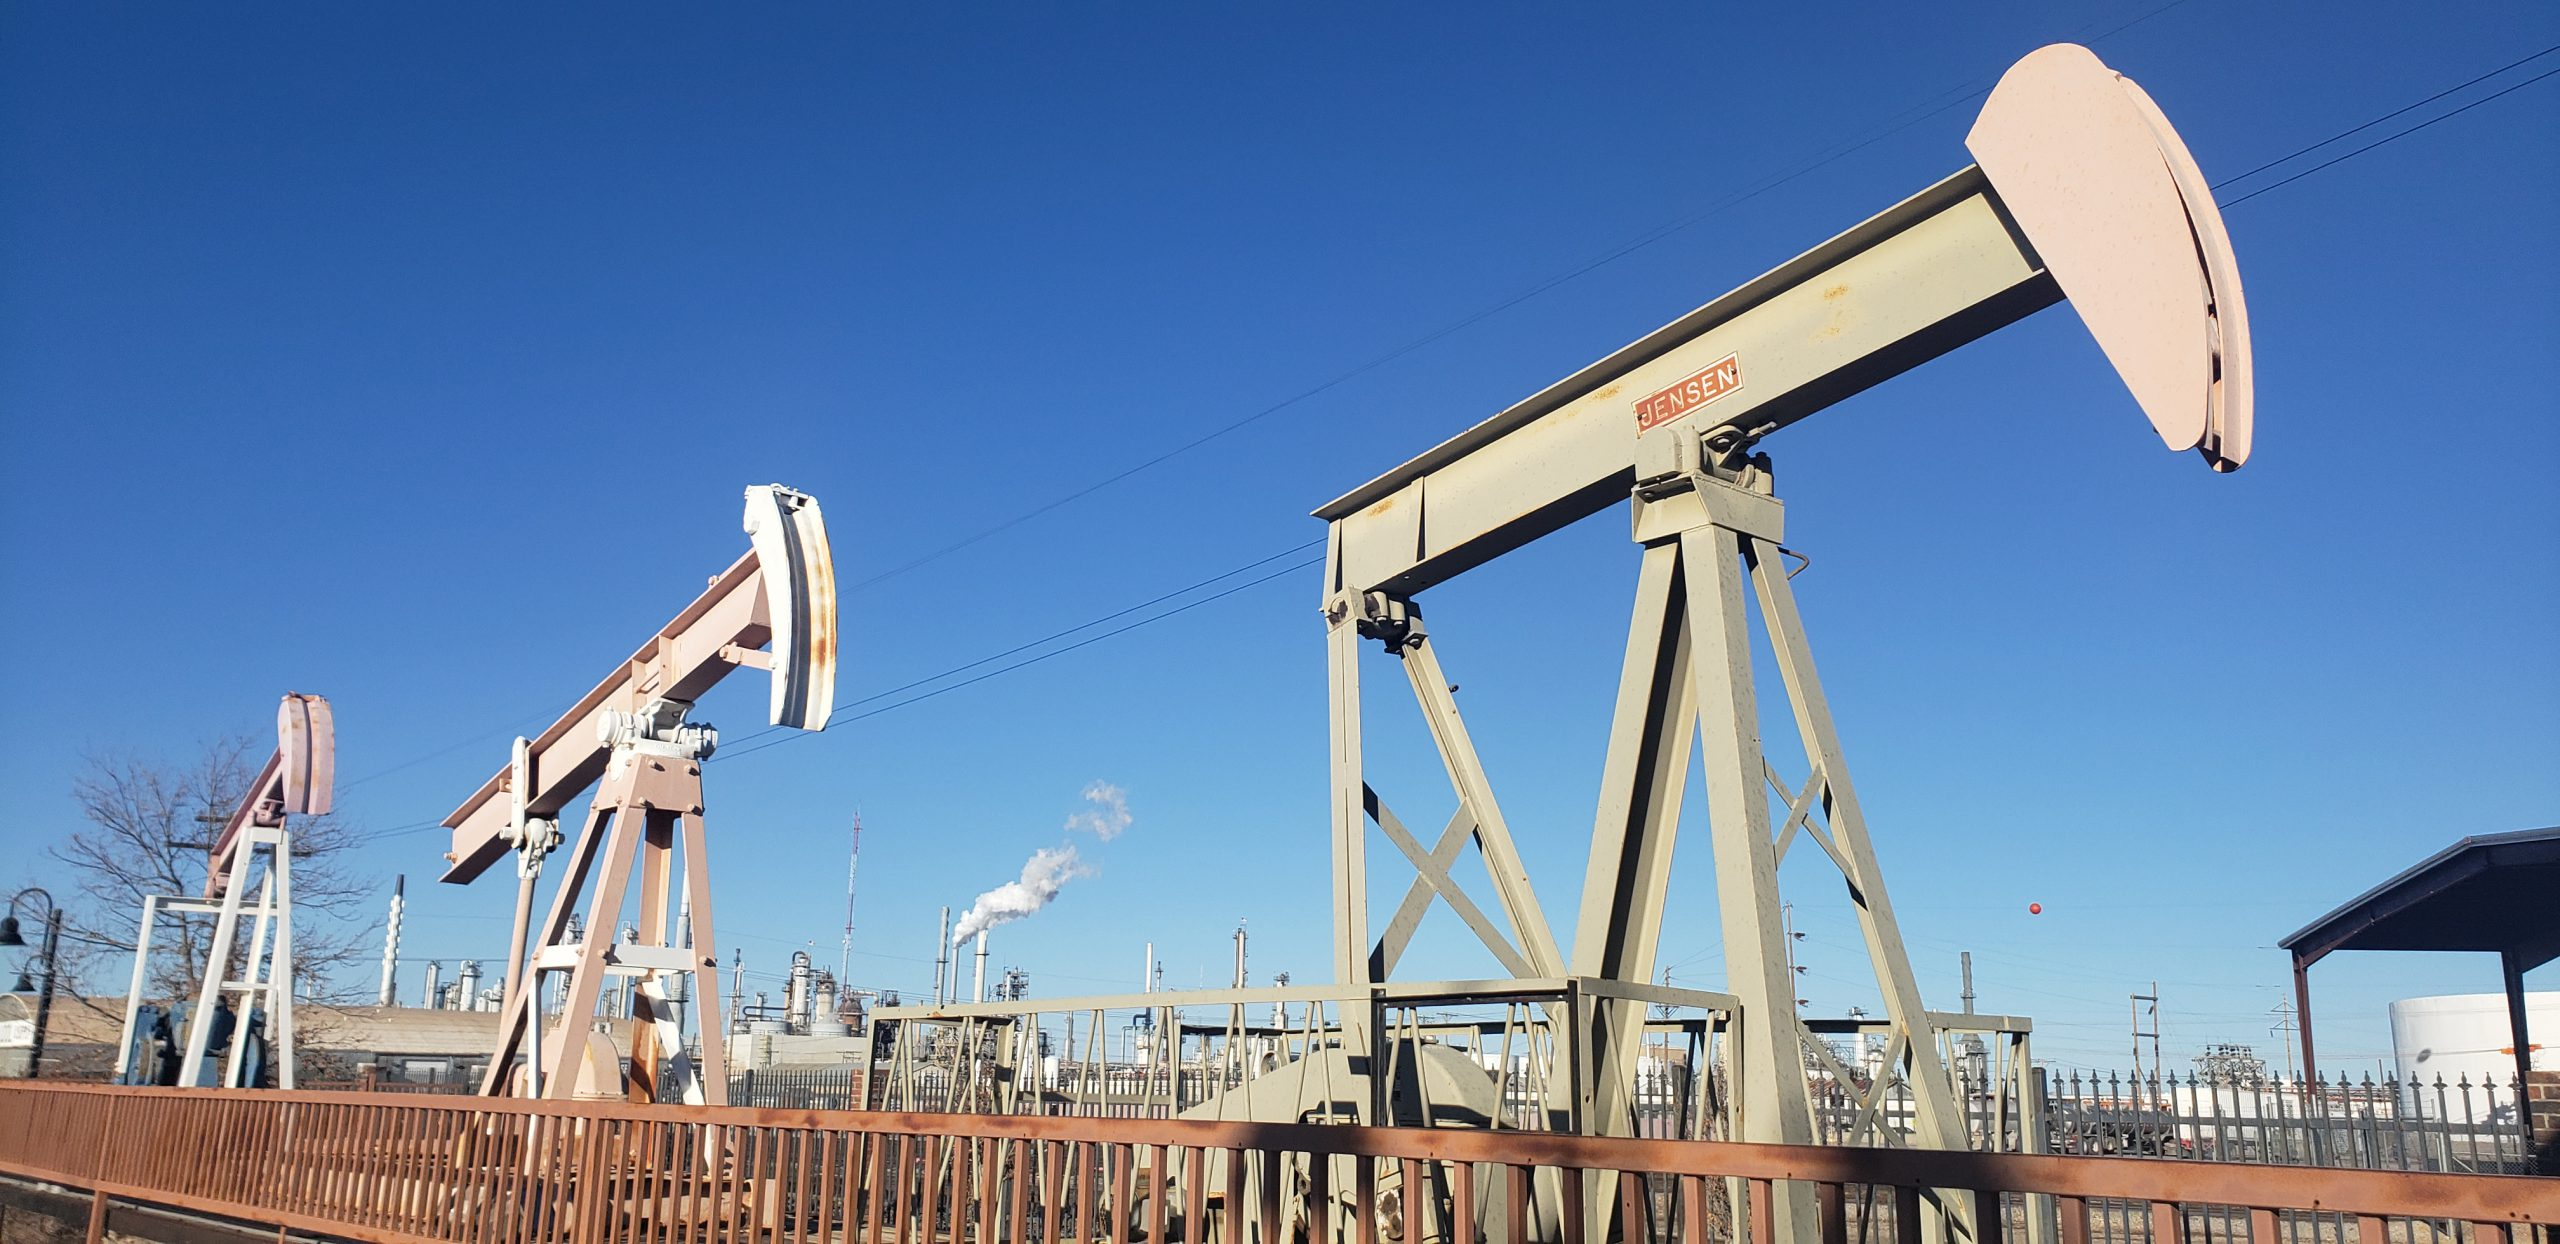 decommissioned pumpjacks